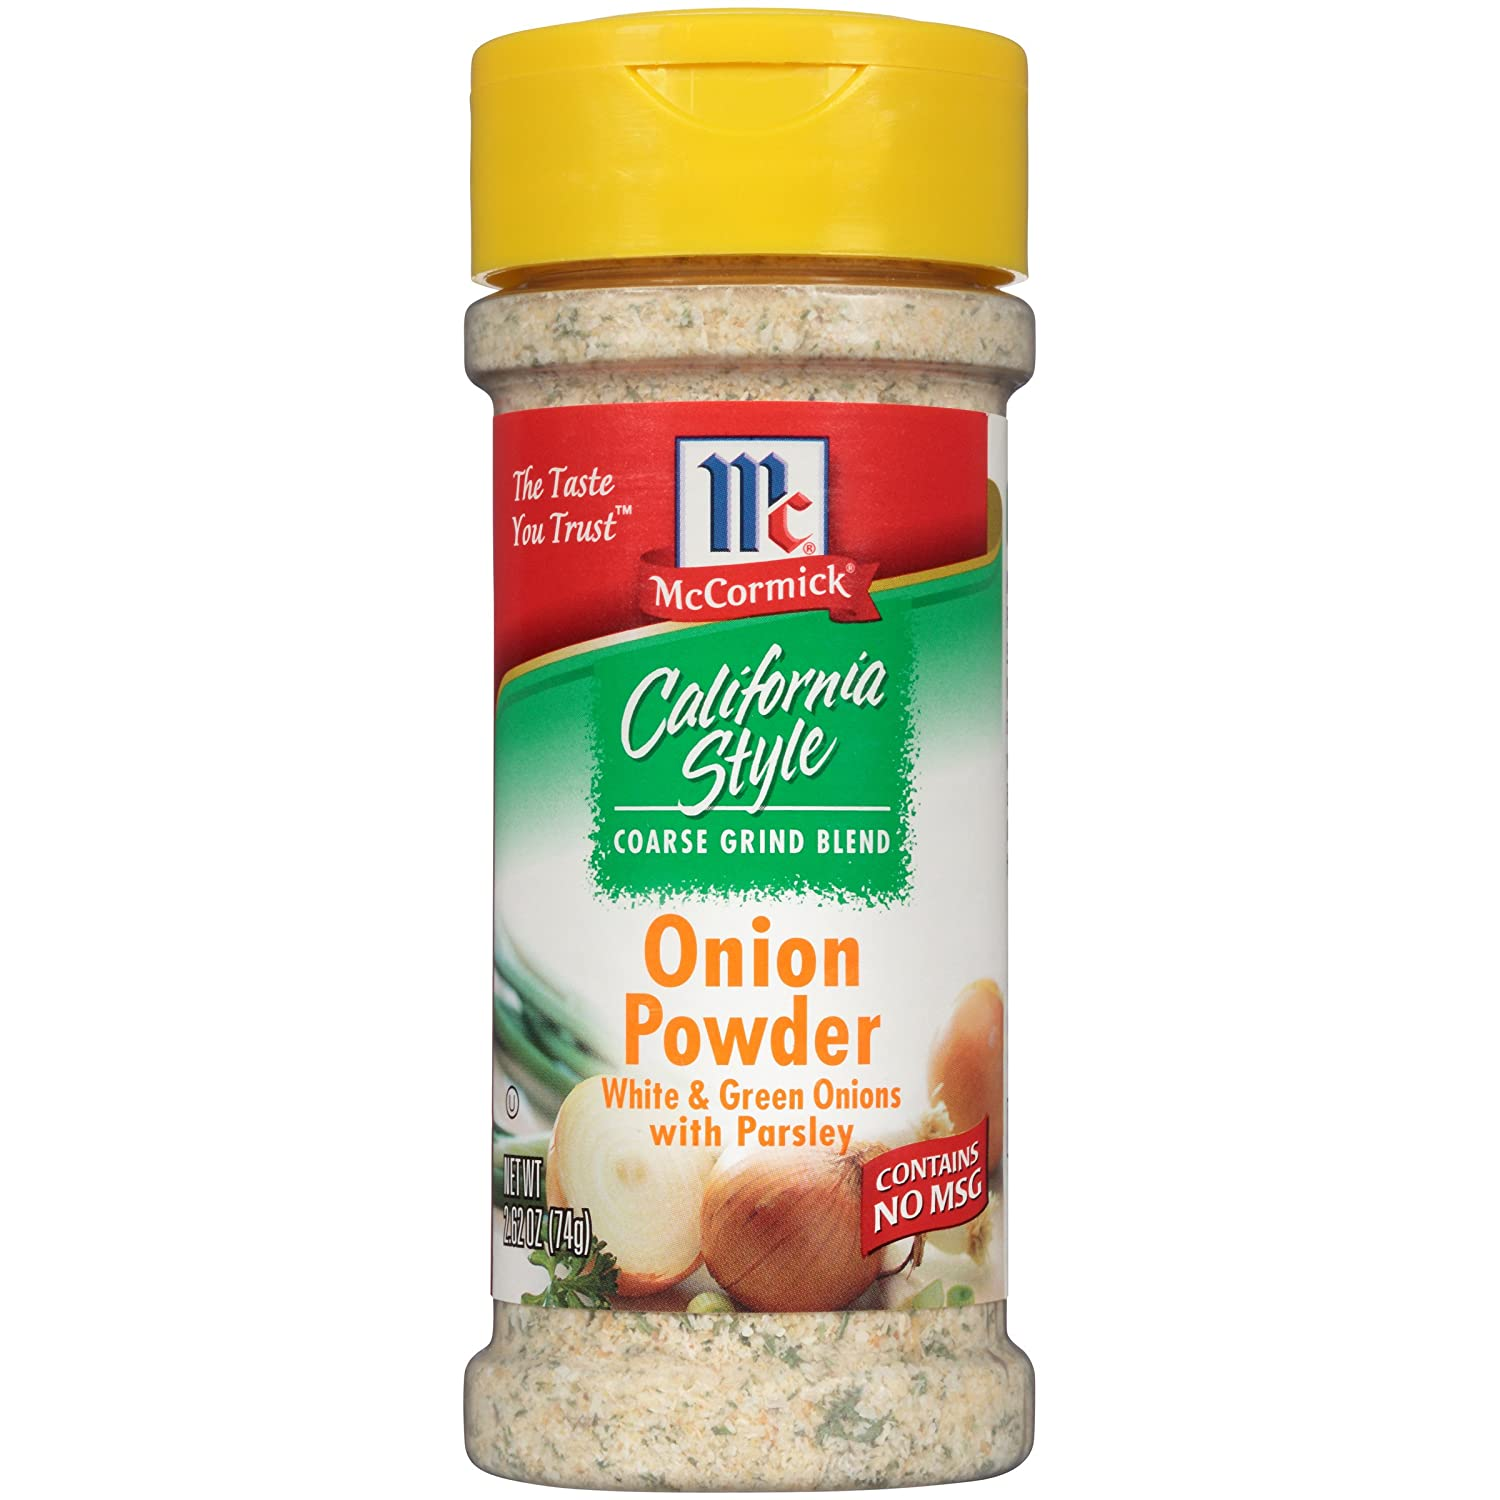 McCormick California Style Onion Powder, 2.62 oz